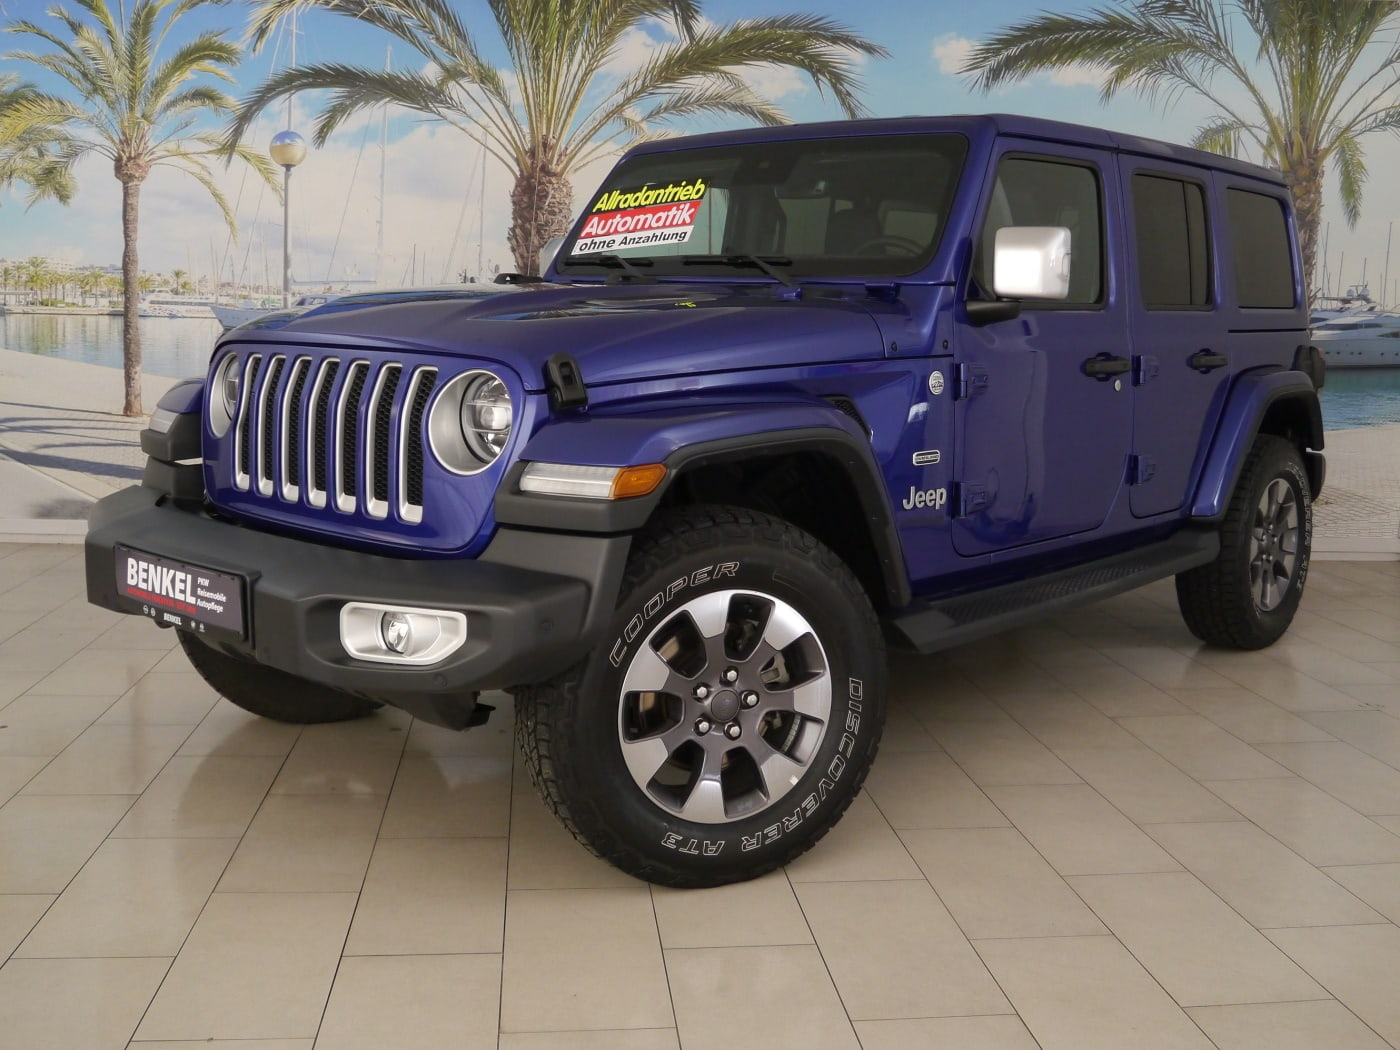 Jeep Wrangler 4x4 Offroad